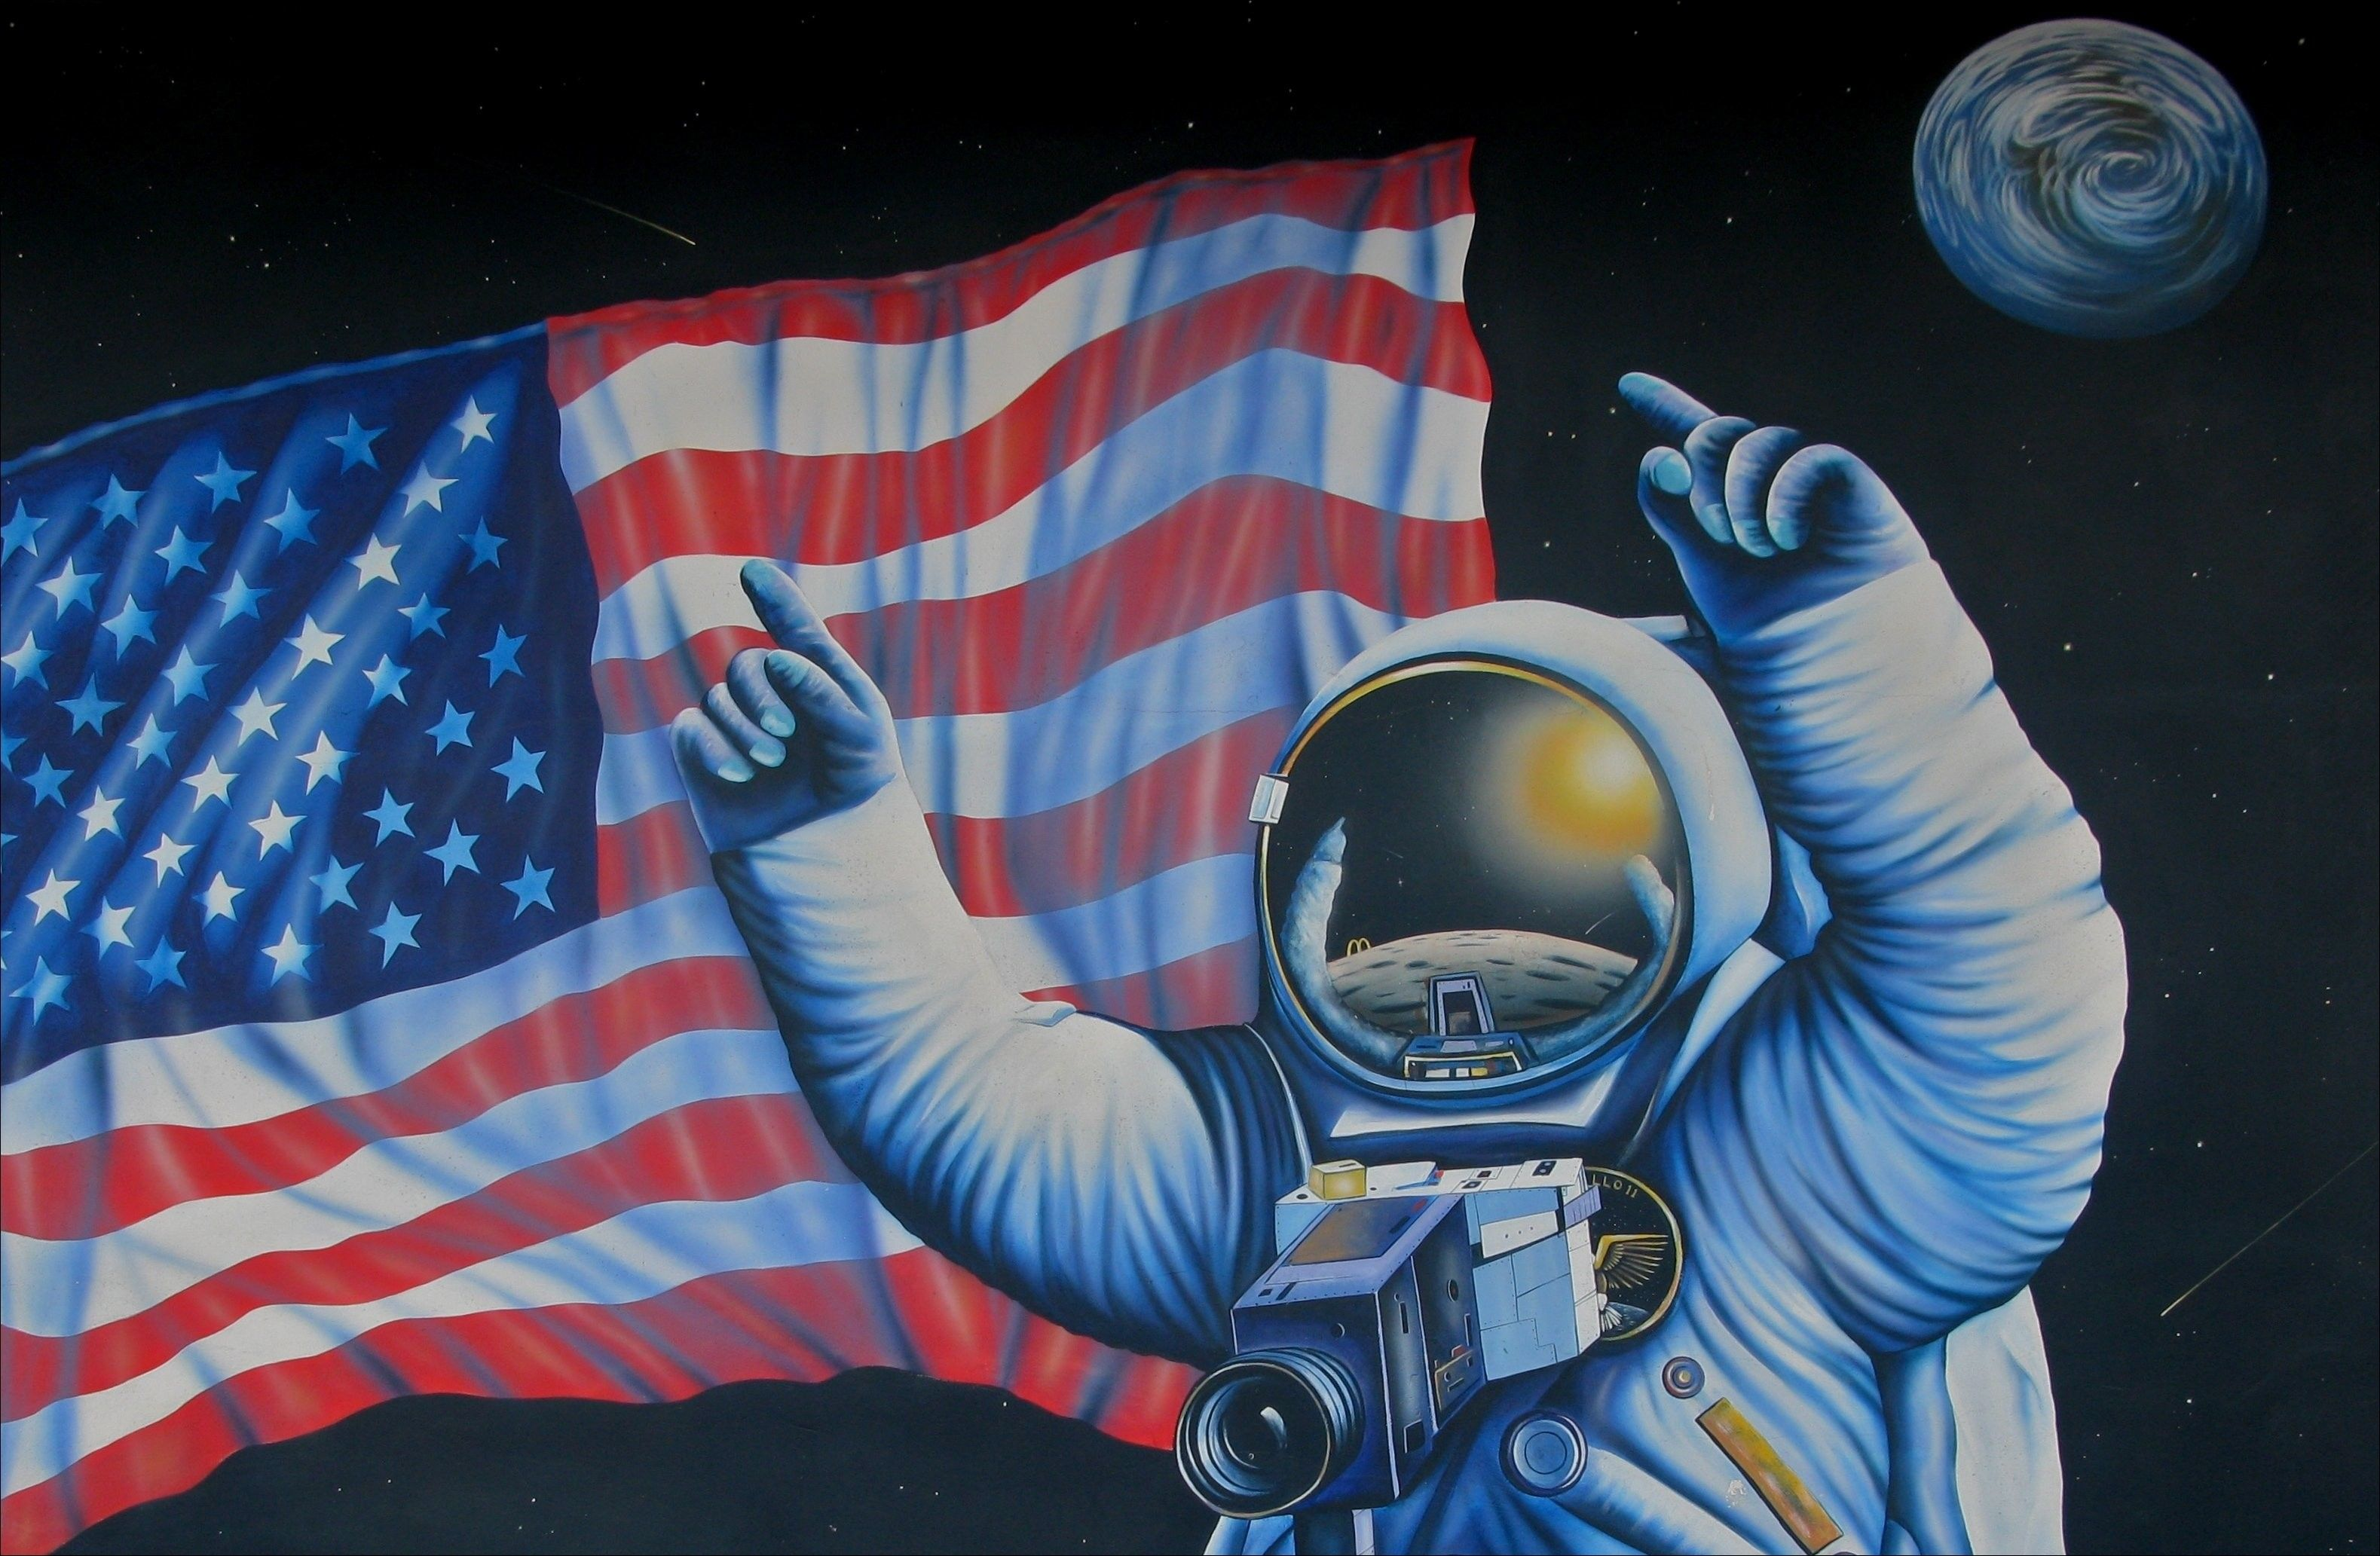 Pin On Background Astronaut on moon with flag wallpaper